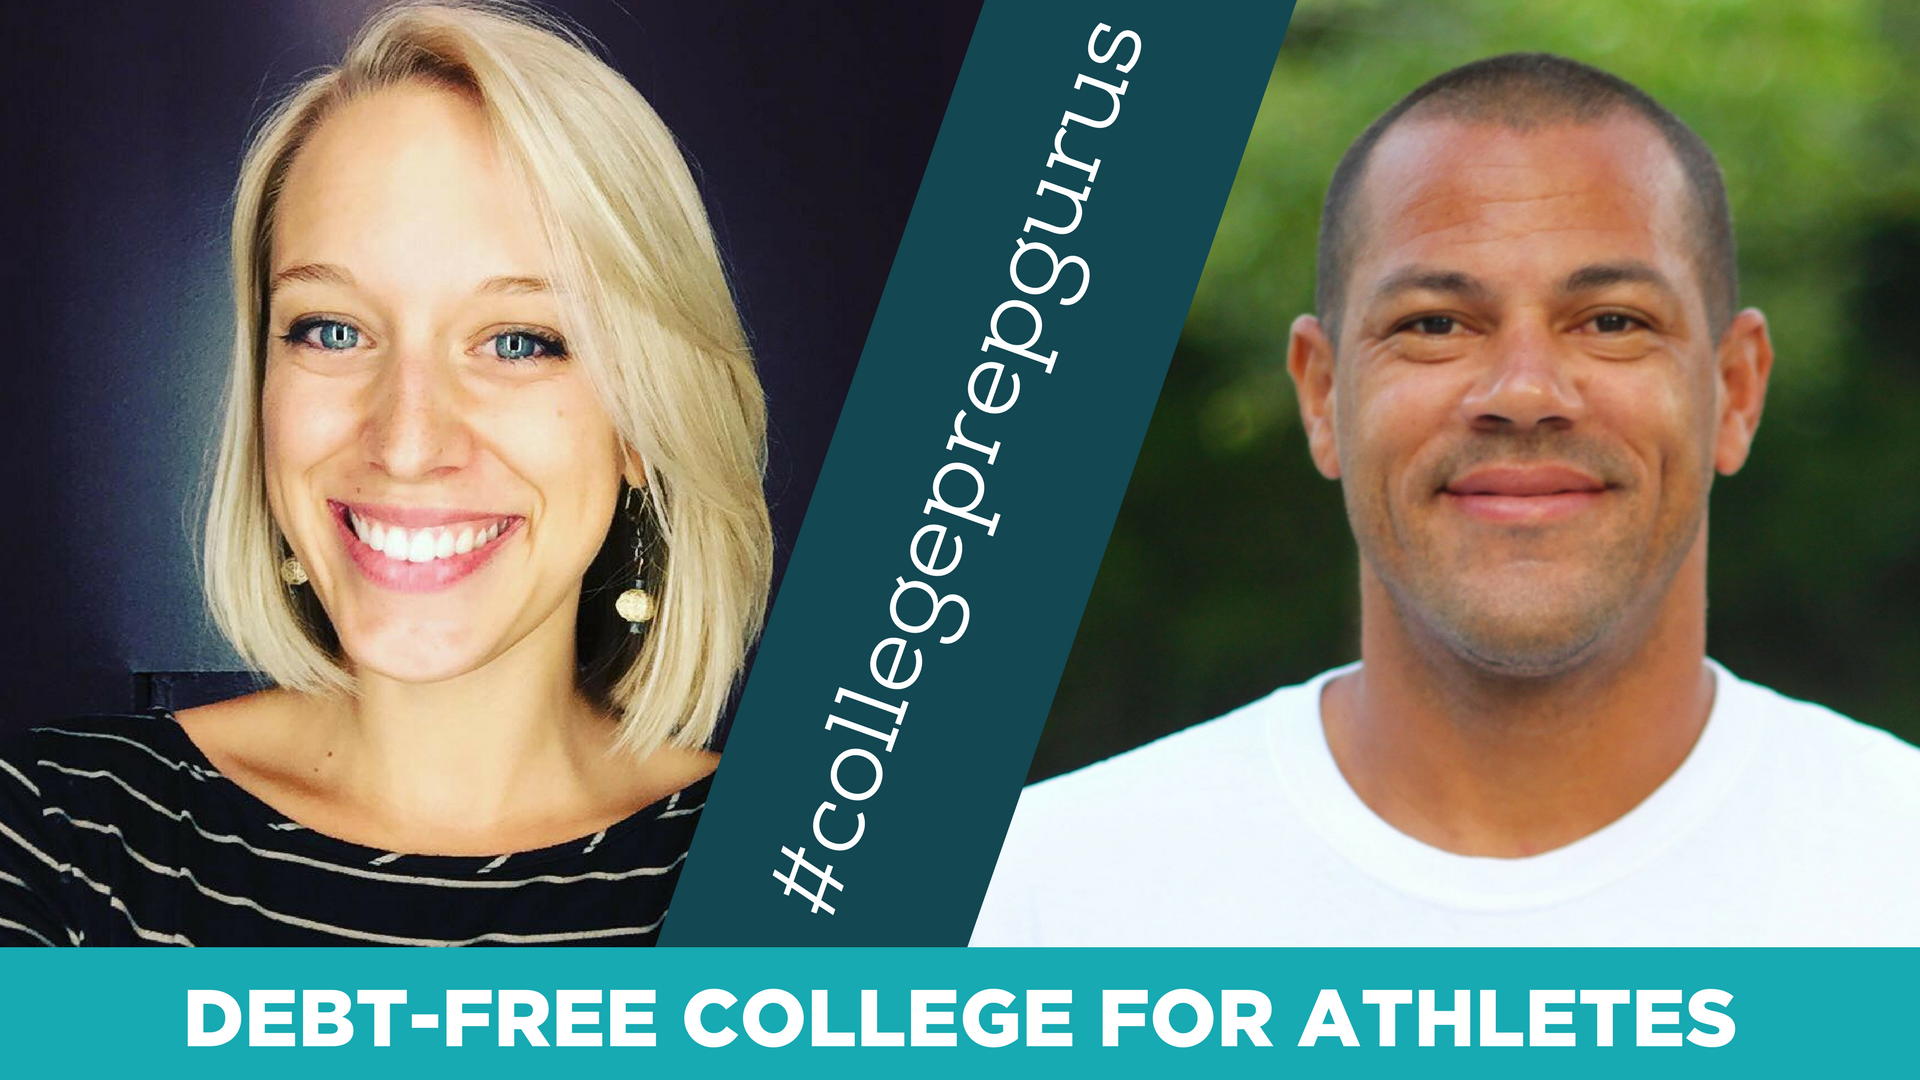 DEBT-FREE COLLEGE FOR ATHLETES